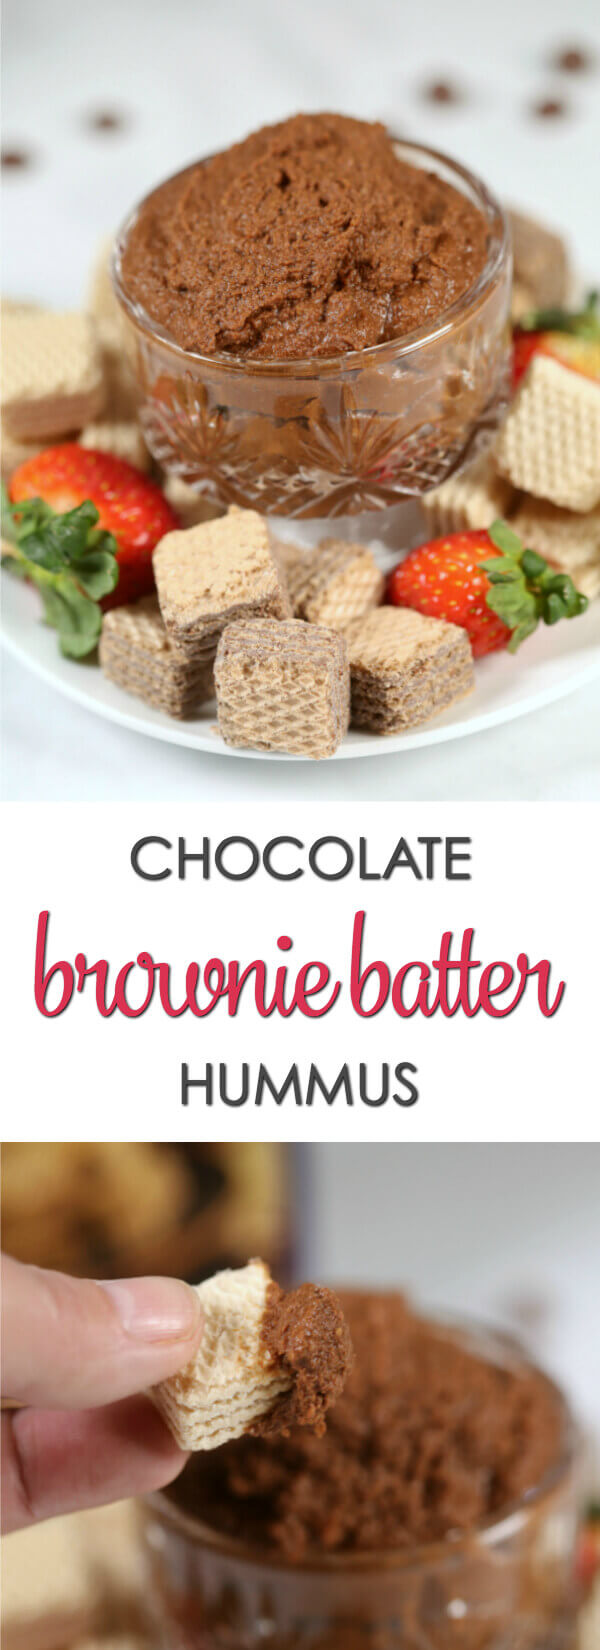 This easy Brownie Batter Hummus recipe is a sweet, chocolate twist on a classic dip.   It takes only 5 minutes to make with a few simple ingredients.  My secret ingredient really kicks up the chocolate flavor!